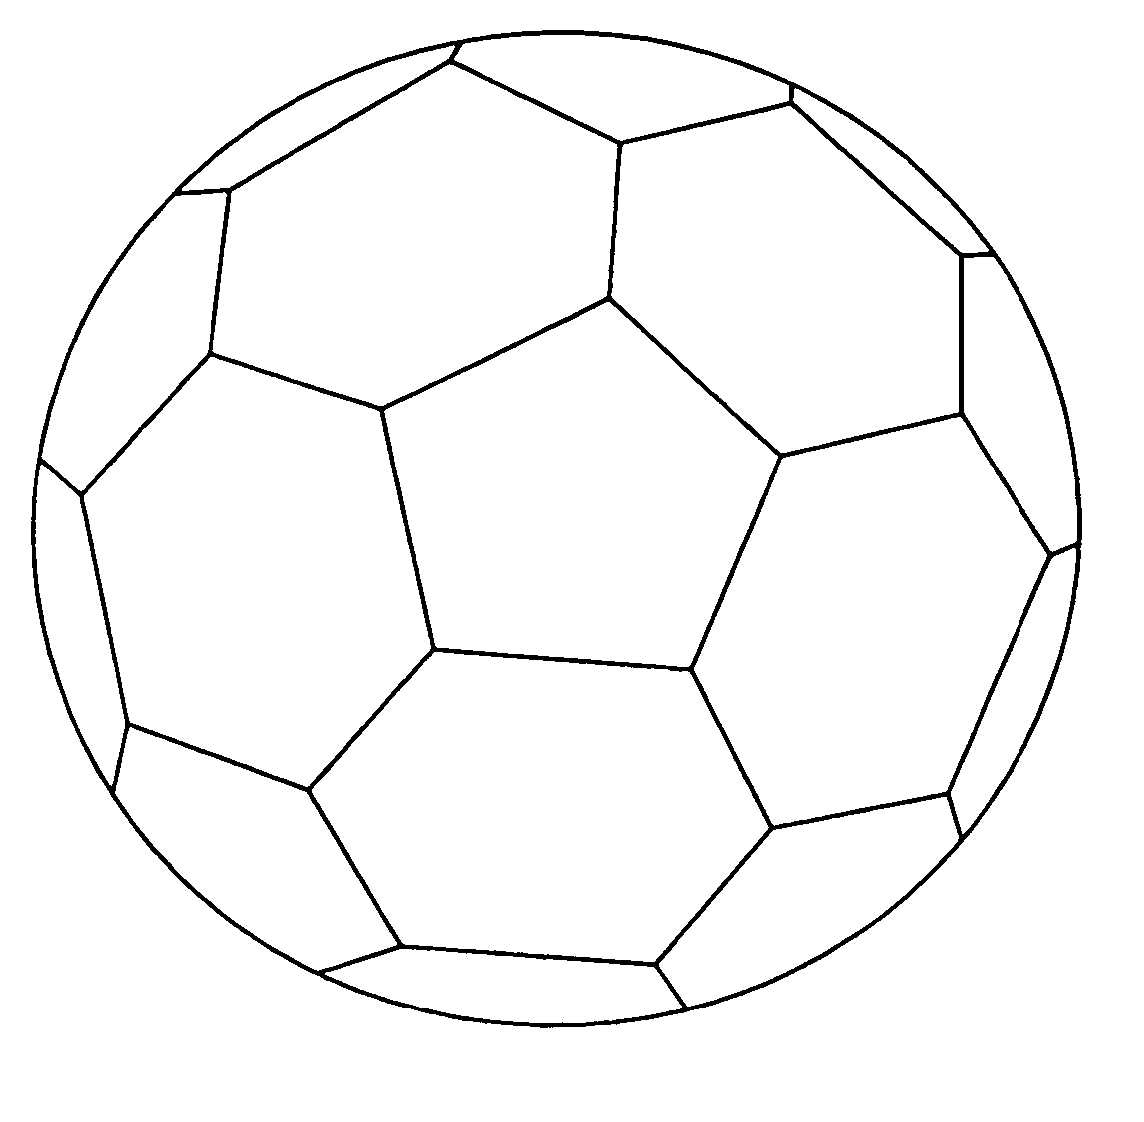 colouring picture of a ball soccer ball coloring page soccer ball soccer football a ball of picture colouring